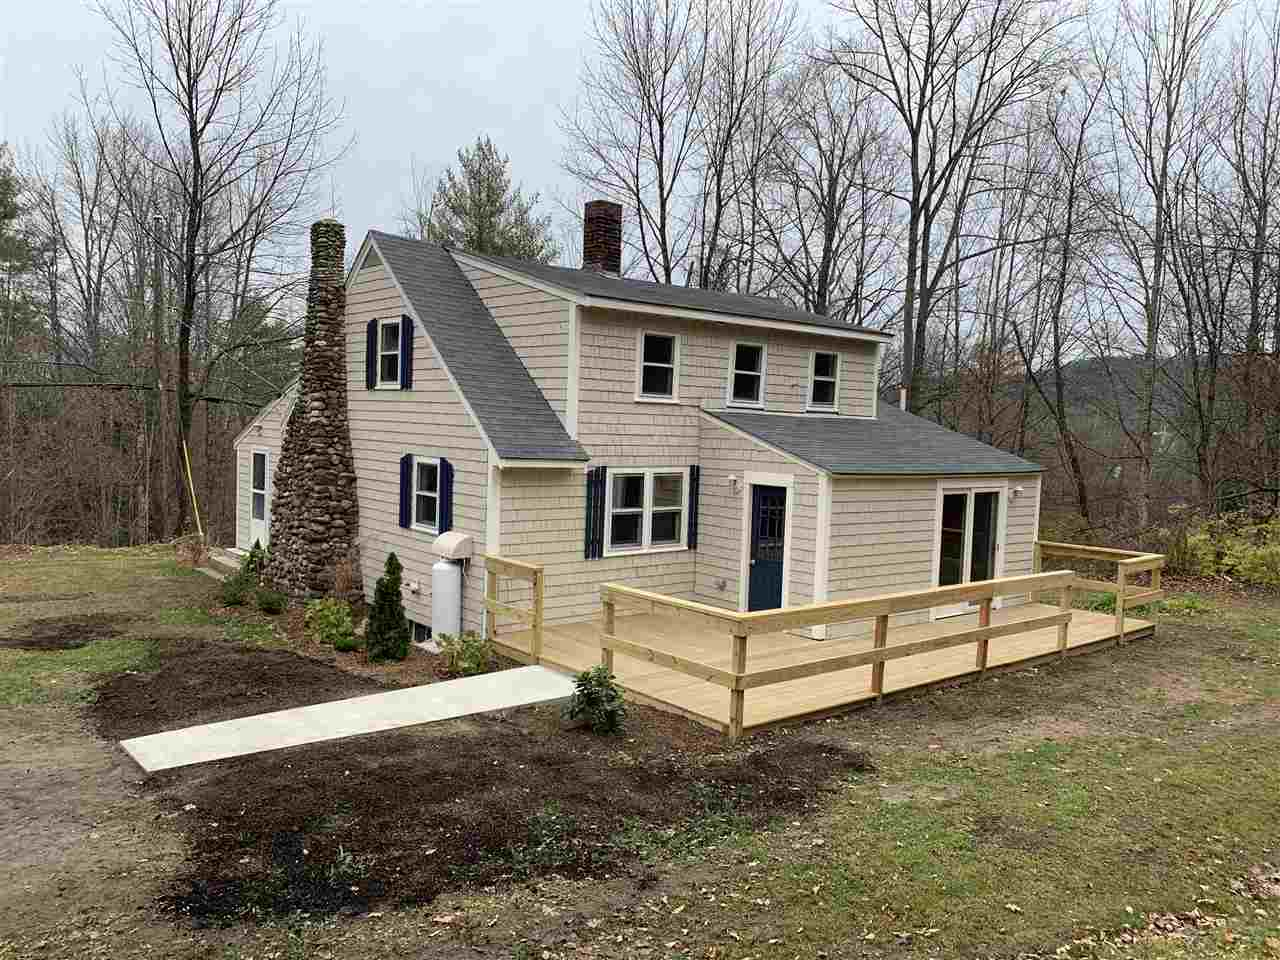 MLS 4784557: 626 Old Bristol Road, New Hampton NH